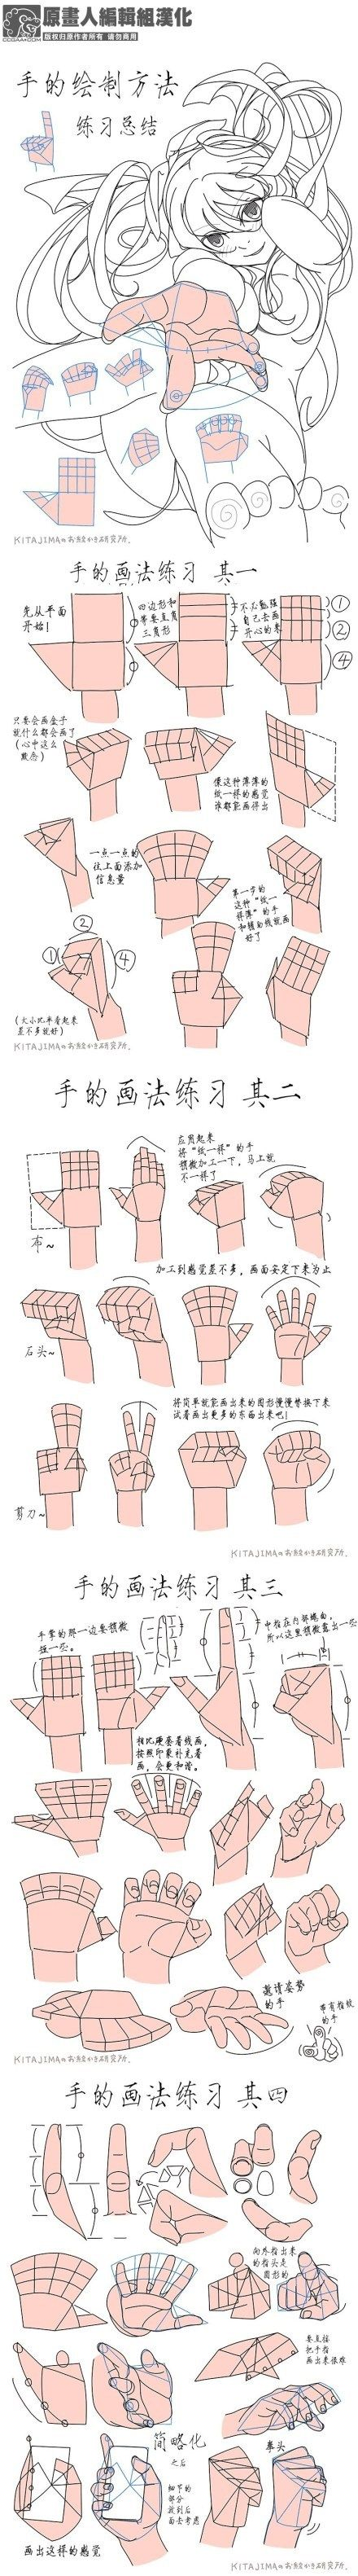 plastic anatomy | Anime one punch | Pinterest | Anatomy, Drawings ...